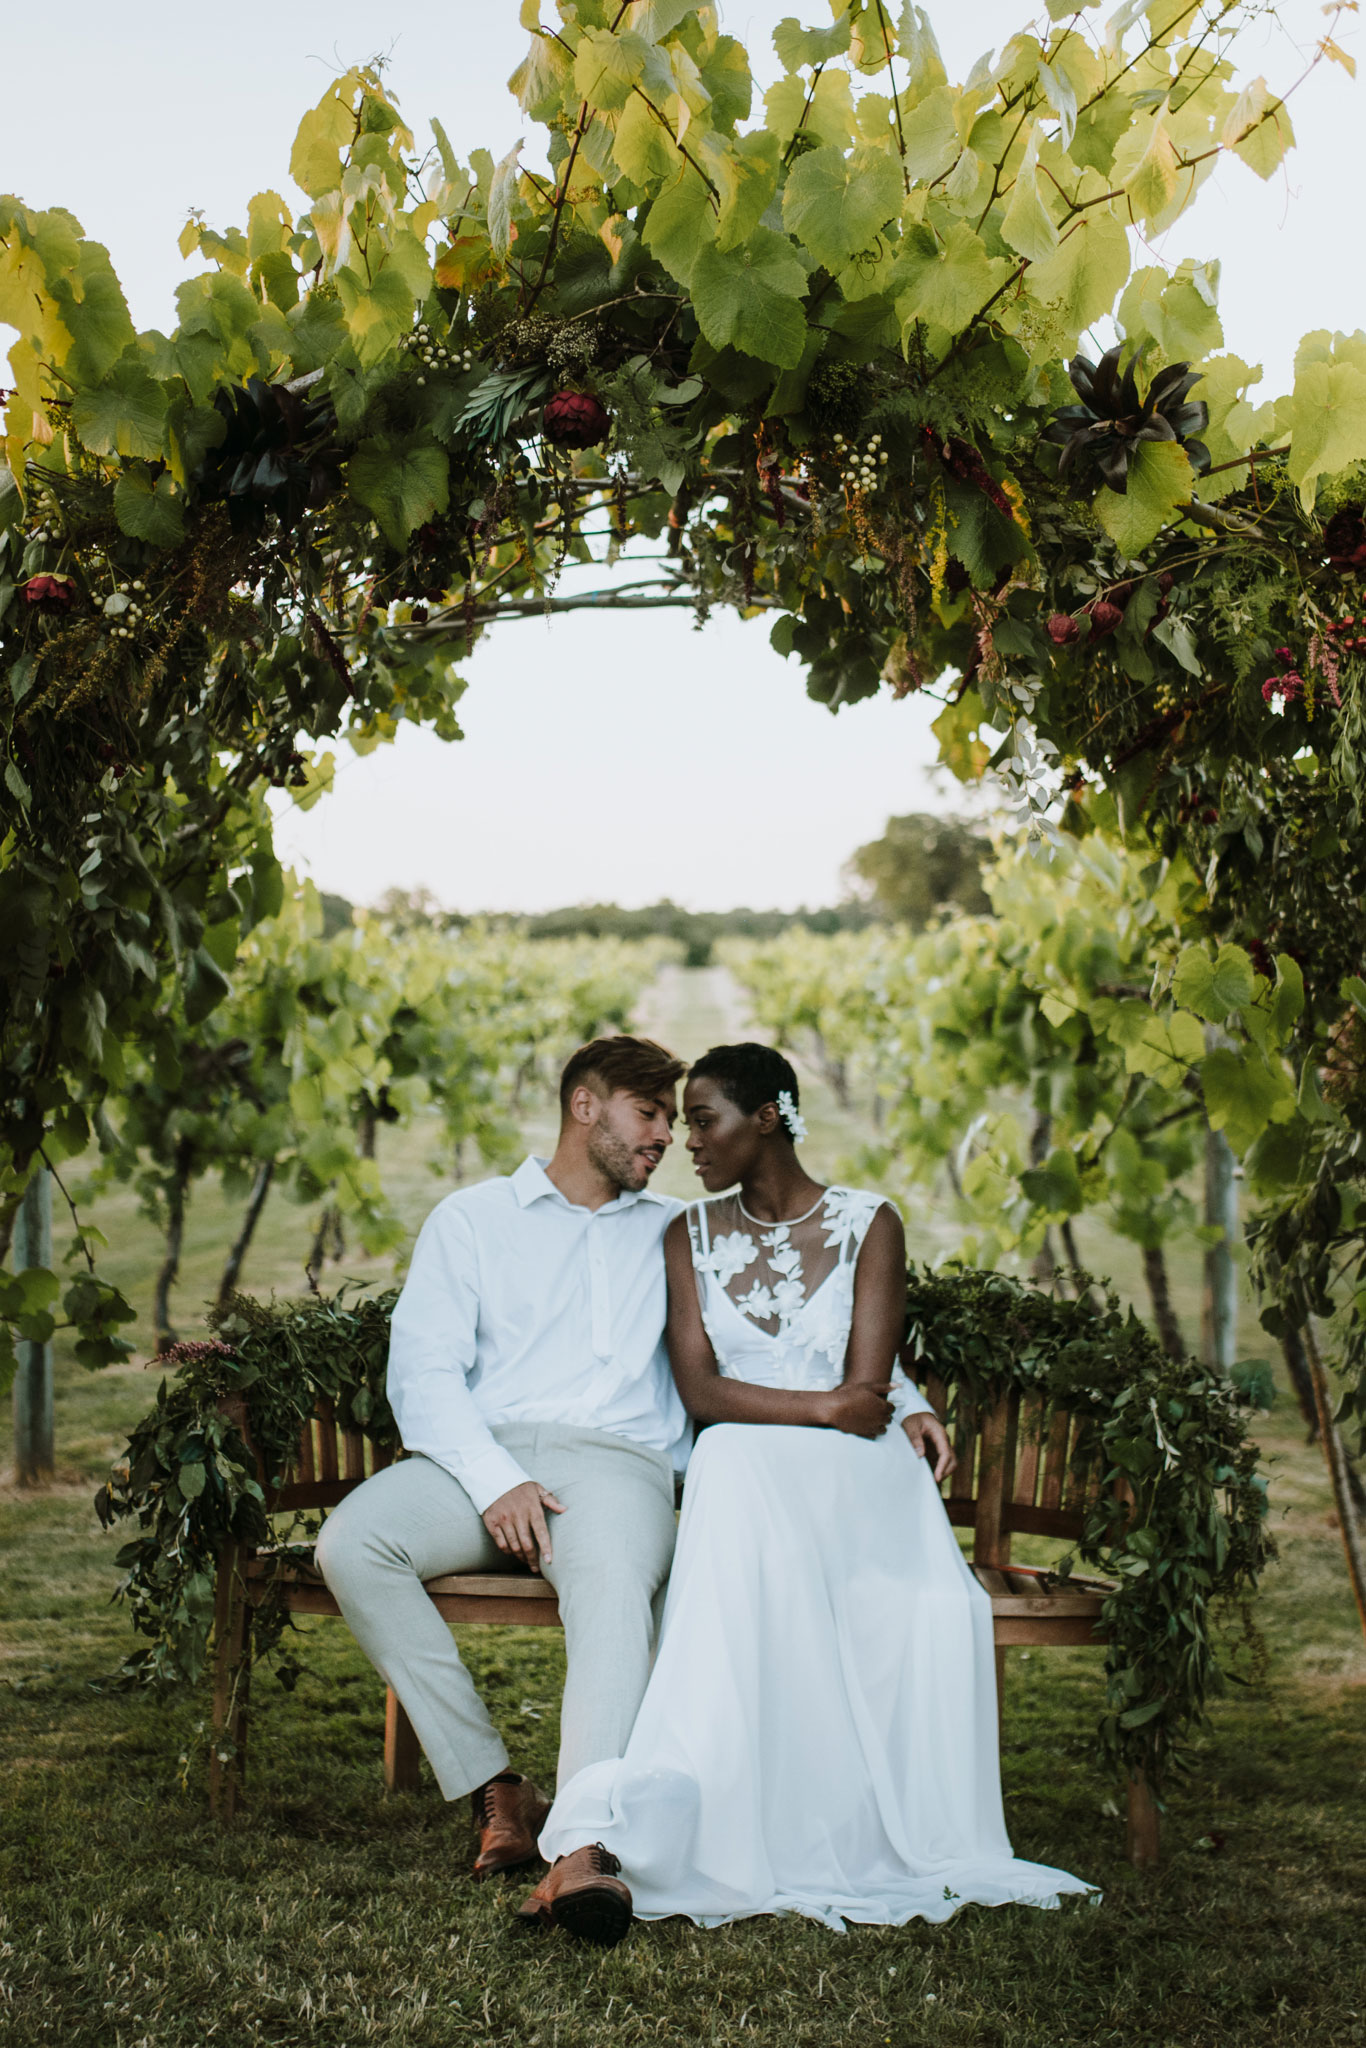 Couple, floral arch, wedding arch, just married, bride, groom